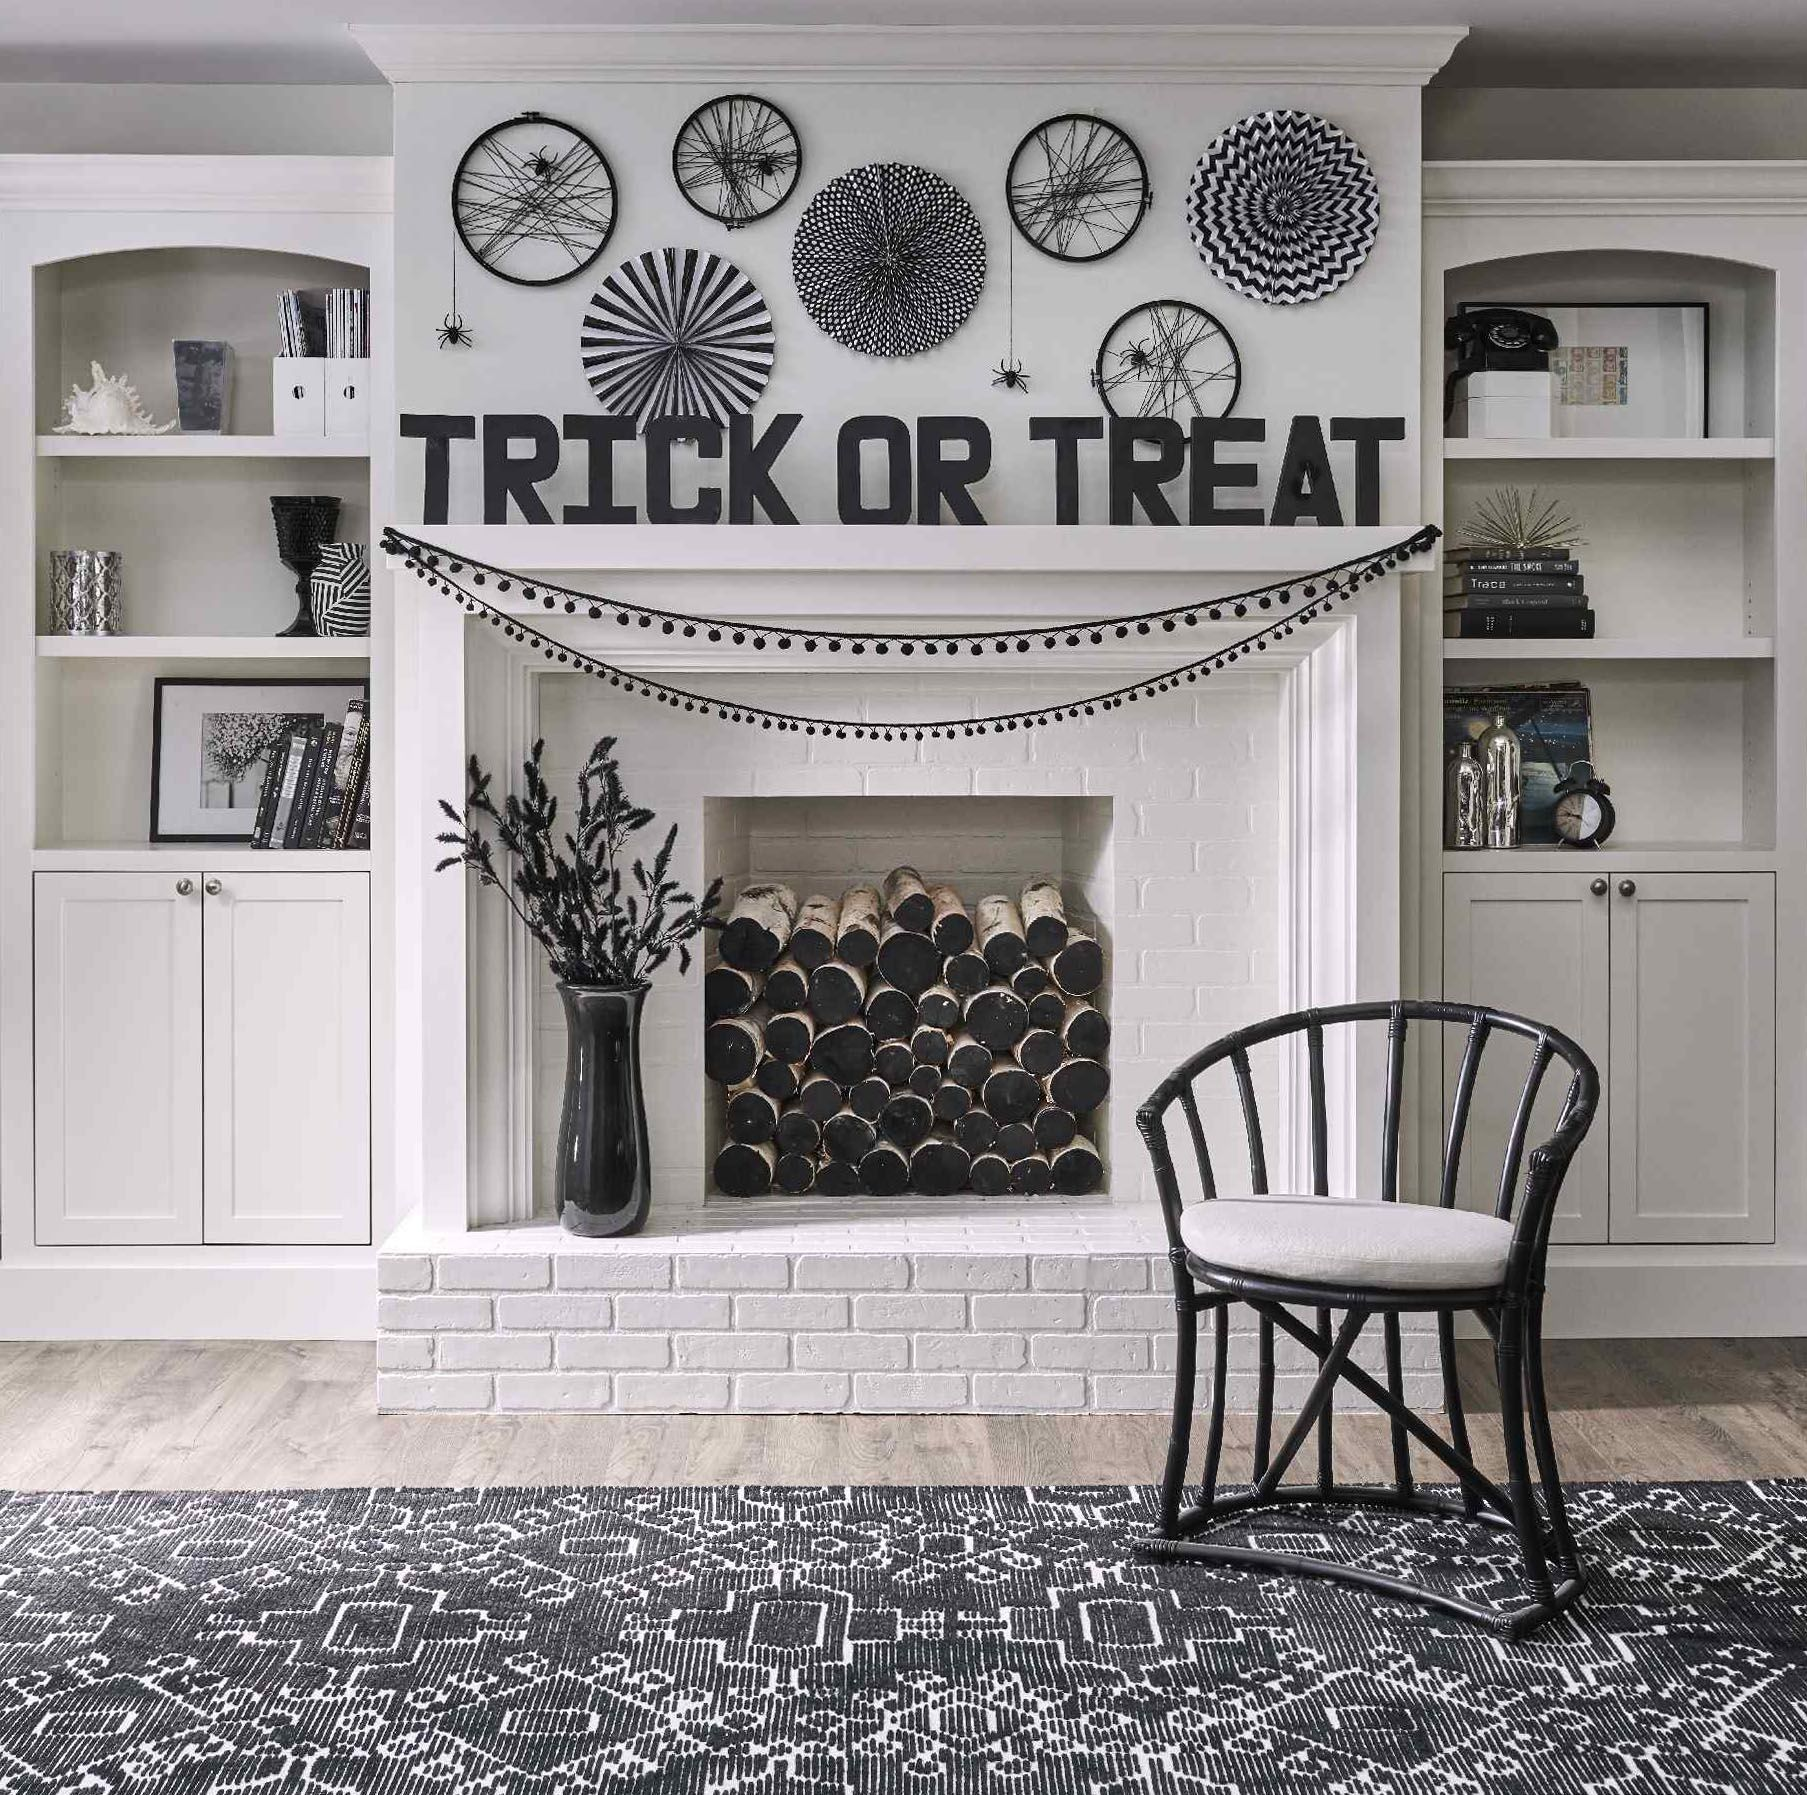 Halloween Mantel Block Party 2020 Throw the Best Halloween Party on the Block with These Fun Themed